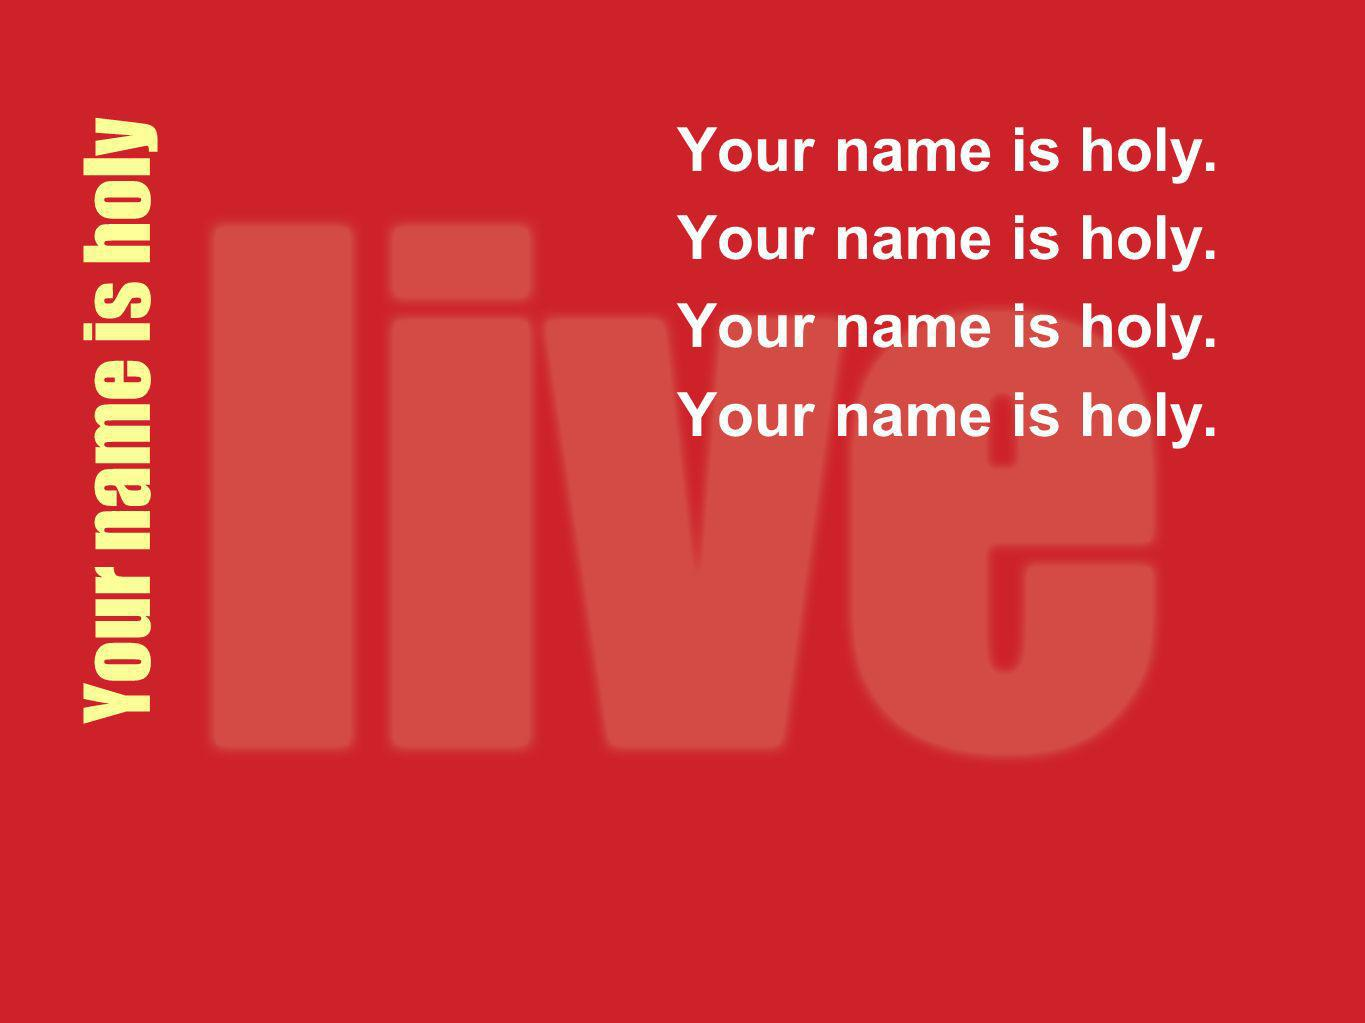 Your name is holy. Your name is holy